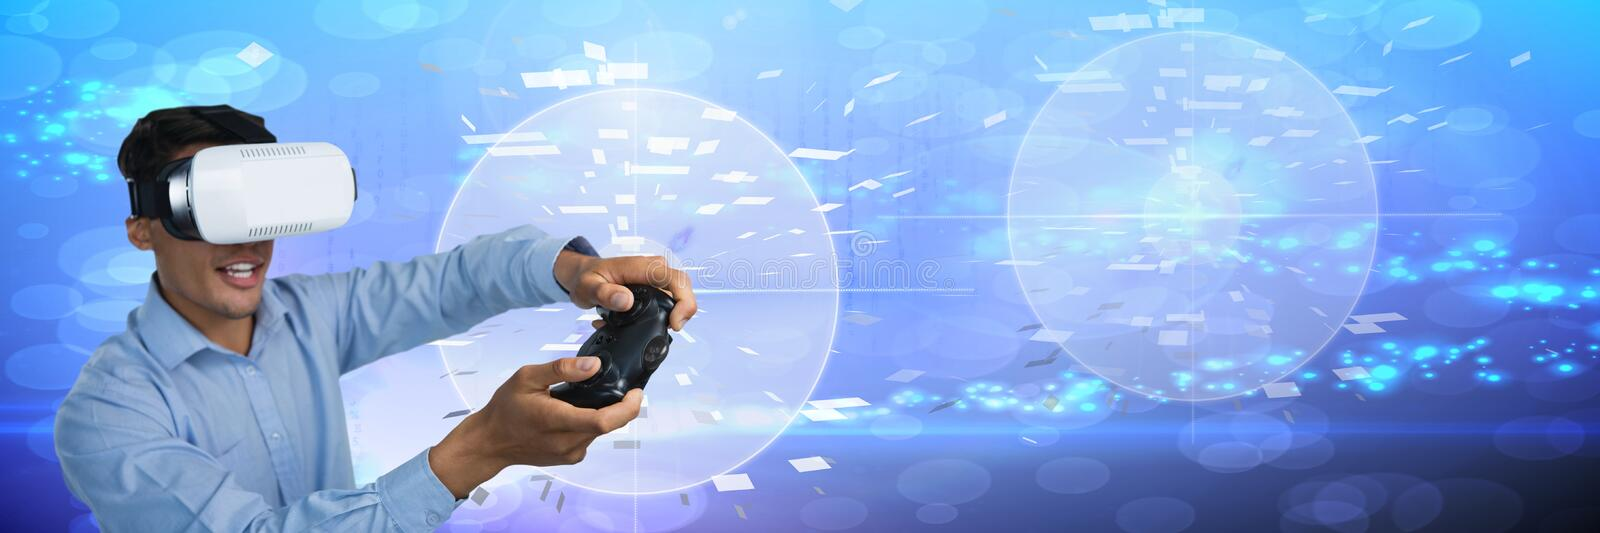 Businessman with virtual reality headset playing with computer game controller with technology backg. Digital composite of Businessman with virtual reality royalty free stock photo